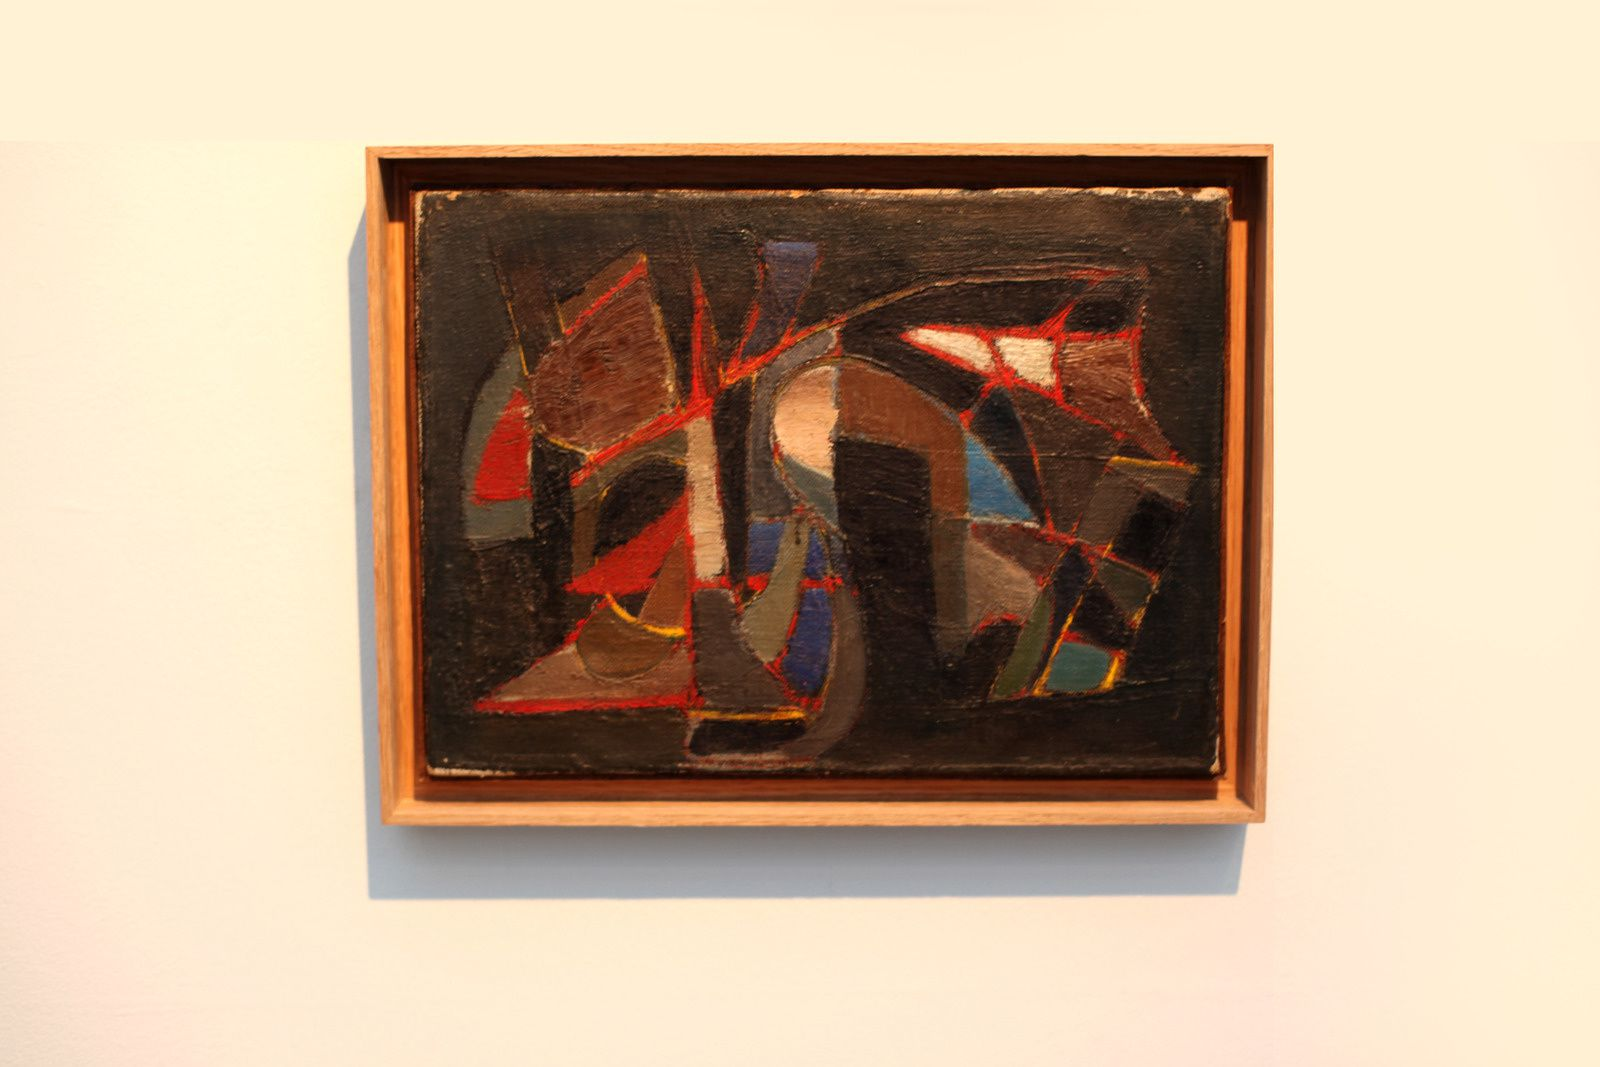 """Composition"", 1945 DE Nicolas de STRAÊL - Courtesy Galerie Jeanne Bucher Jaeger © Photo Éric Simon"